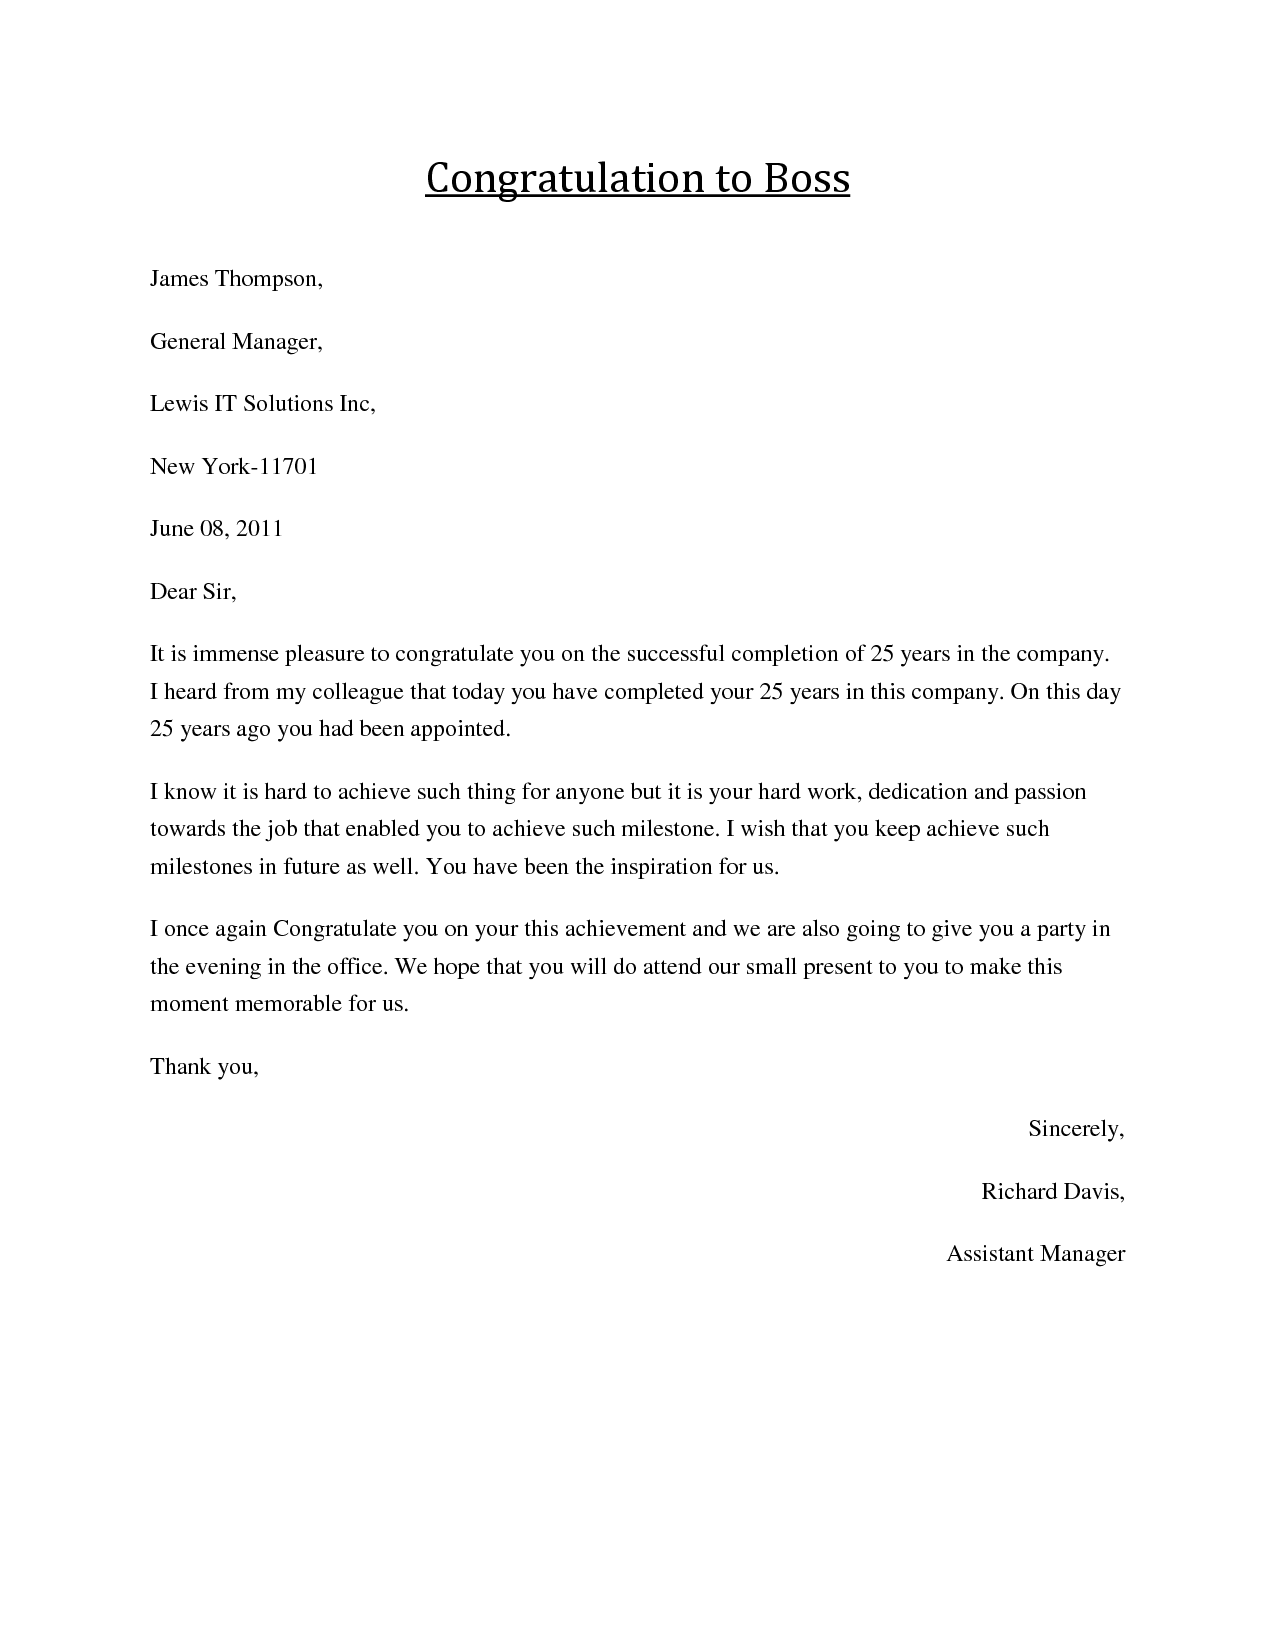 Congratulations letter to boss job congratulations formal congratulations letter to boss job congratulations formal business letters and greeting messages to boss m4hsunfo Image collections